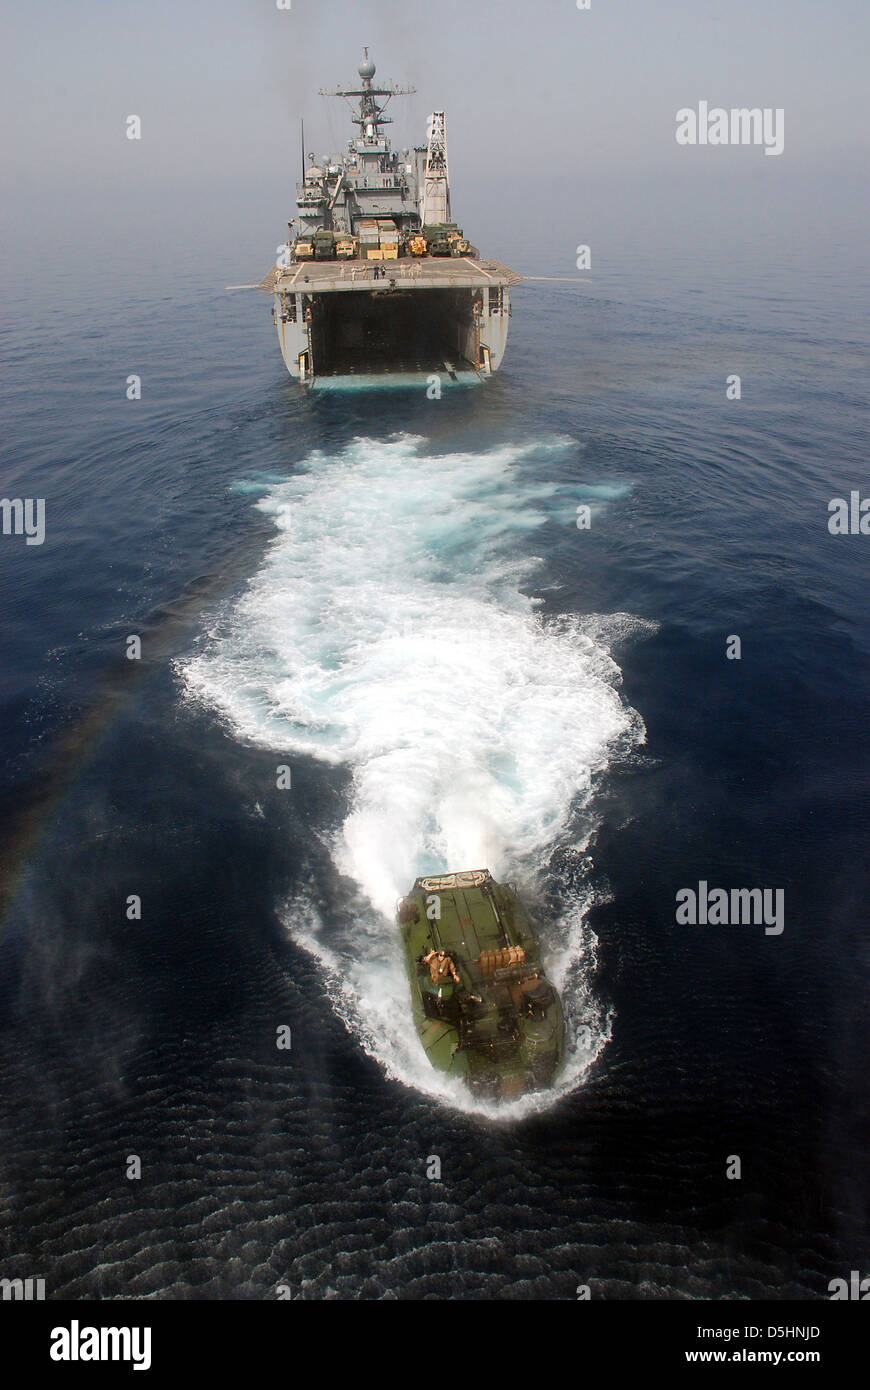 A US Navy amphibious assault vehicle departs the well deck of the amphibious dock landing ship USS Rushmore during - Stock Image